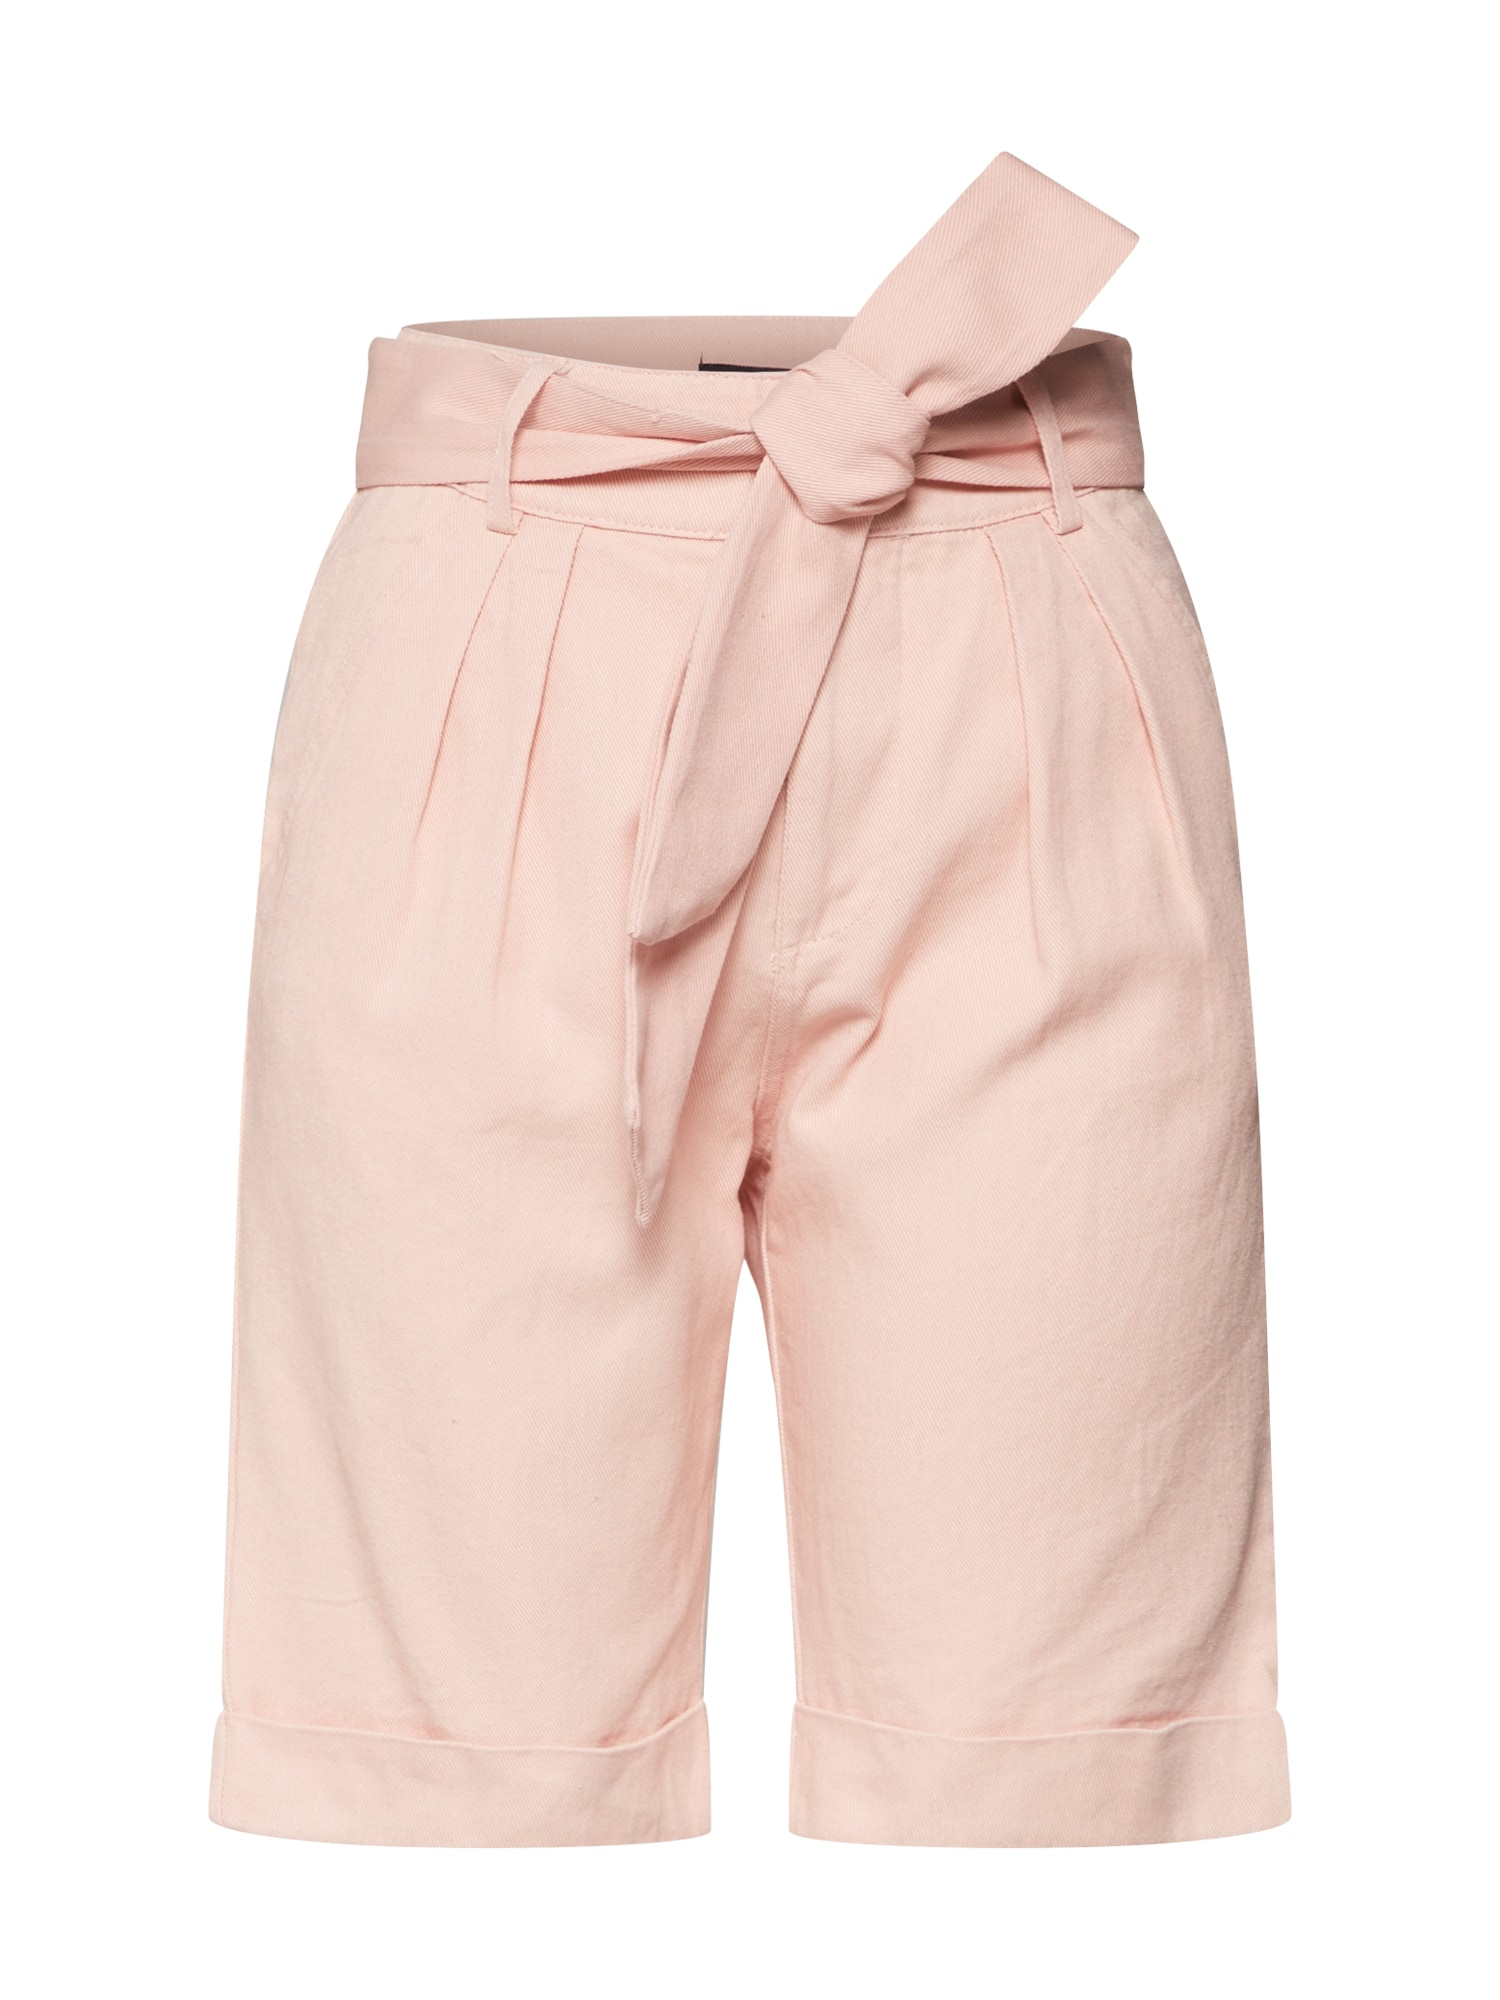 Missguided Kalhoty se sklady v pase 'Belted Turn Up Co ord Short Pink' růžové